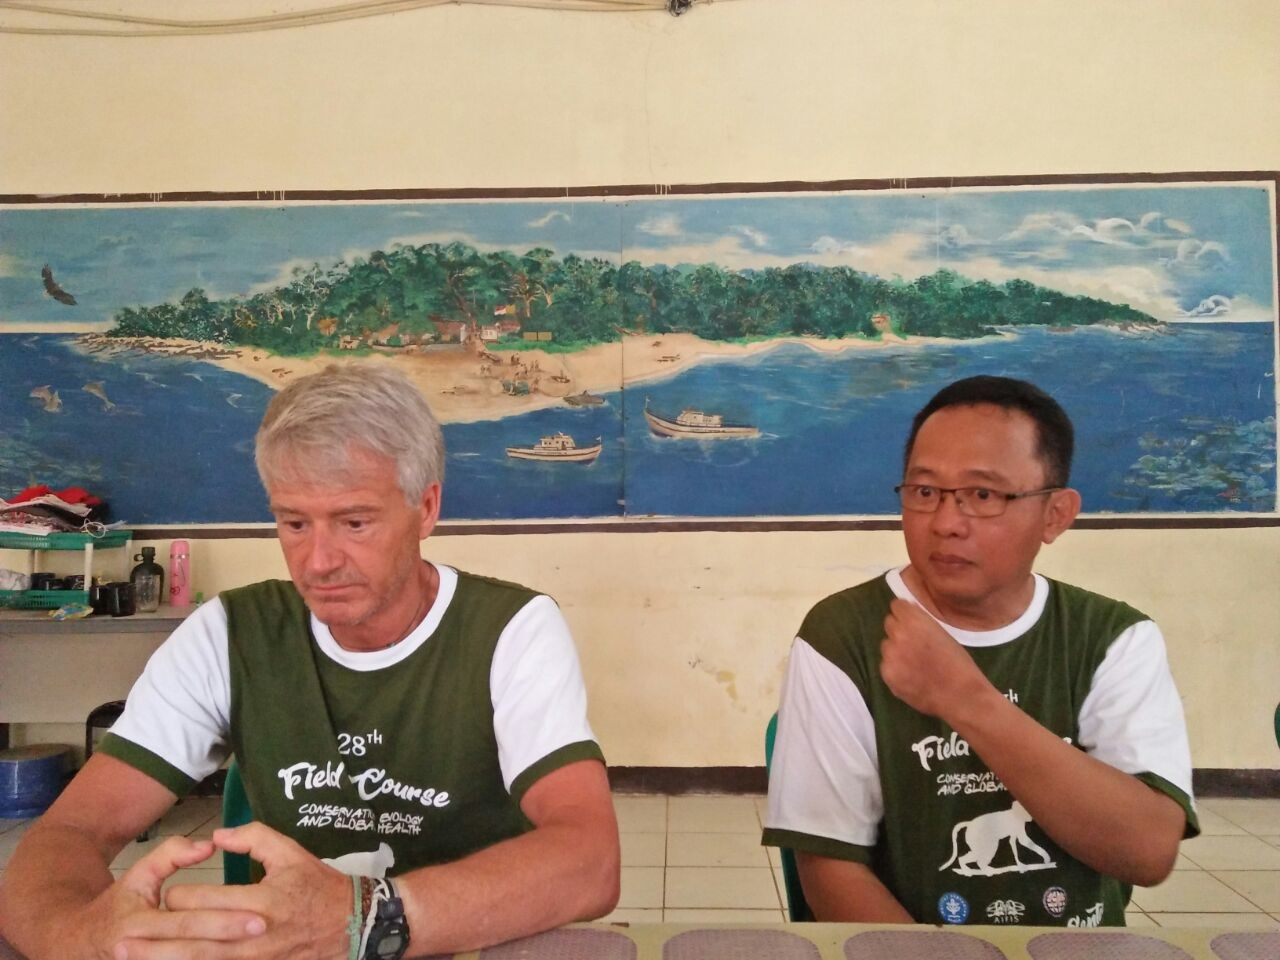 Two die on boat trip to research primates in Banten waters